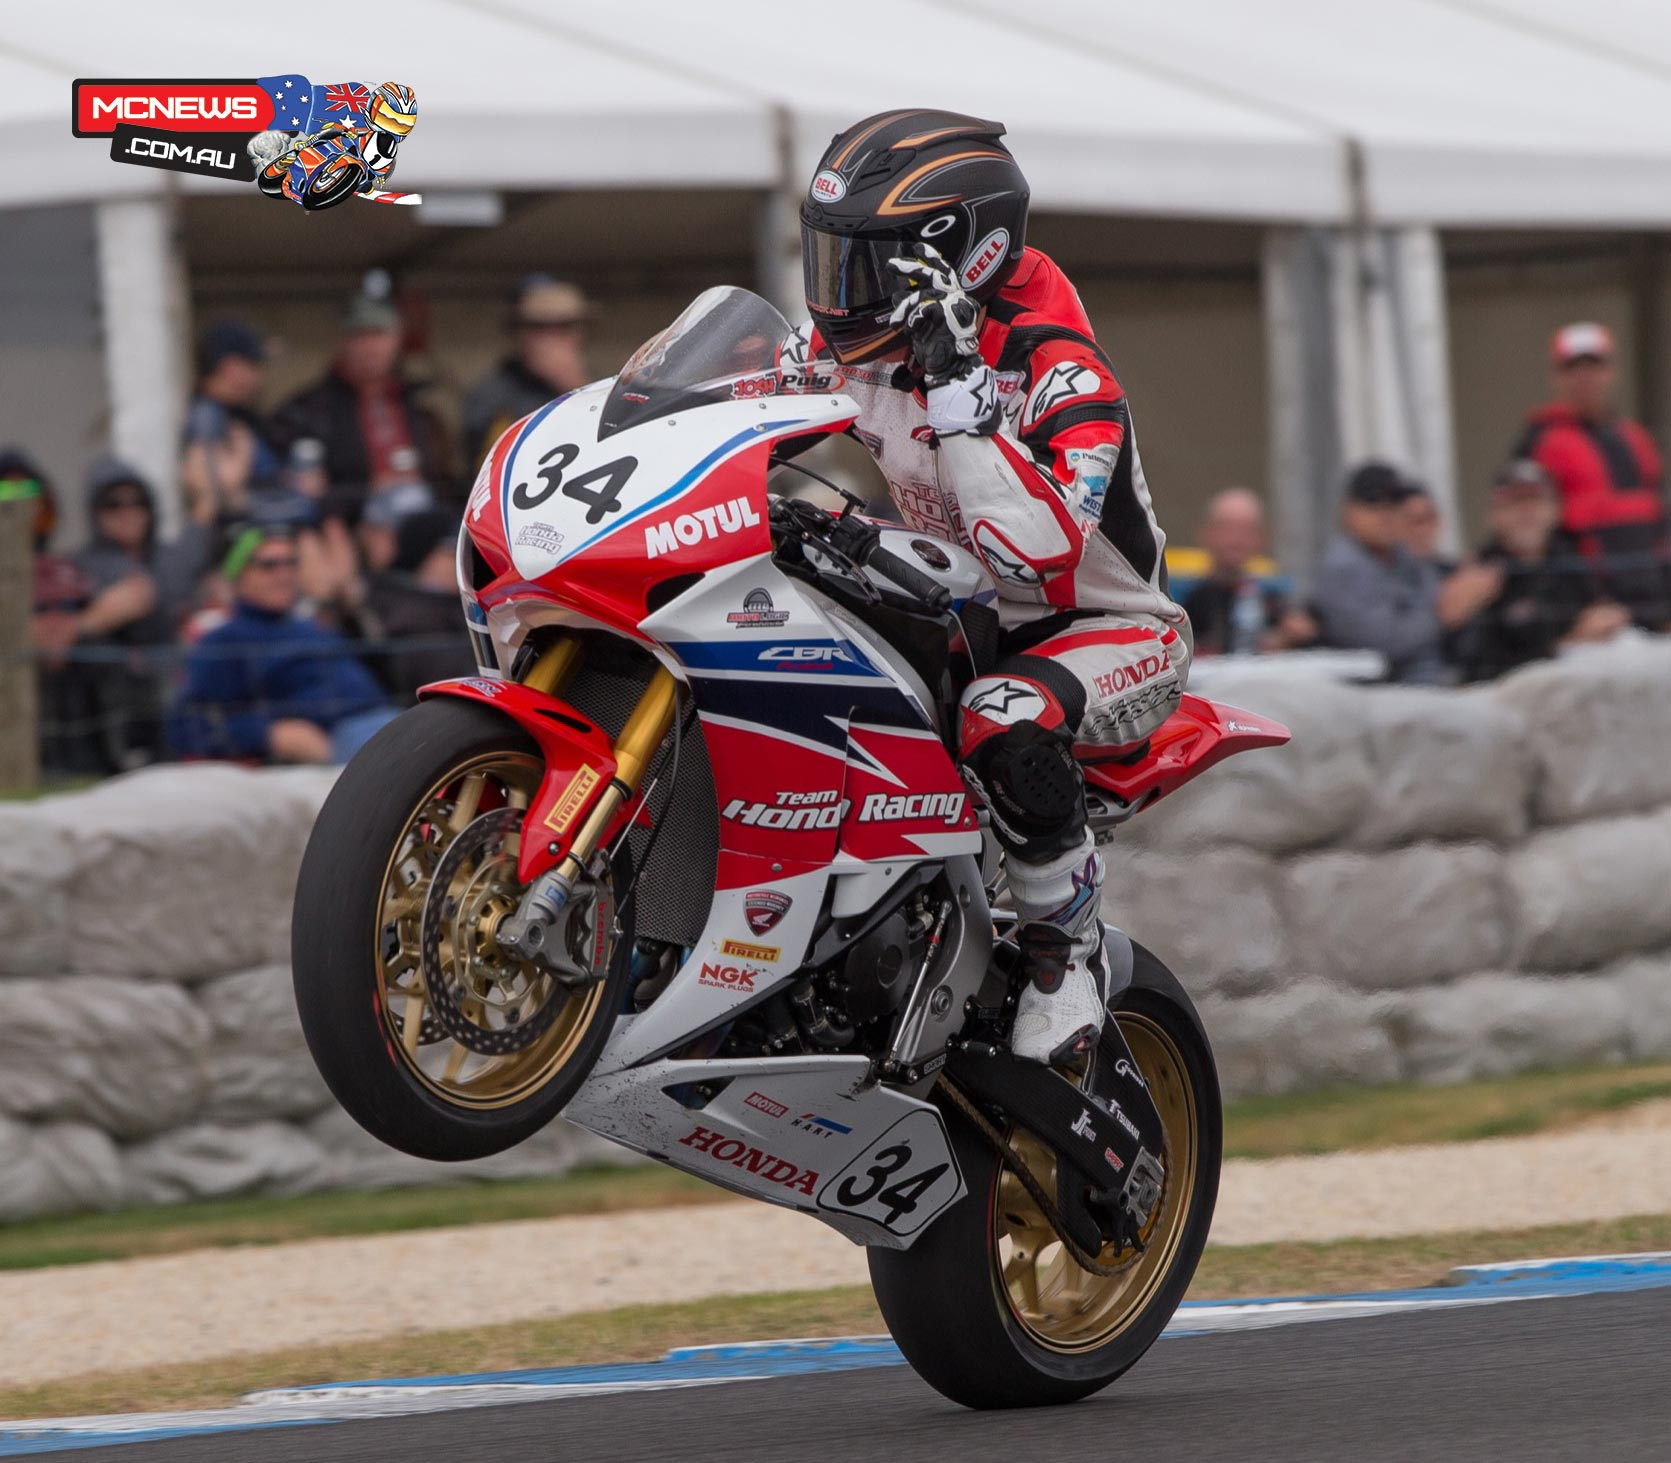 Team Honda's Josh Hook celebrated his maiden Superbike win at Phillip Island earlier this year then wrapped up a perfect weekend at MotoGP to take out the inaugural Phillip Island Championship